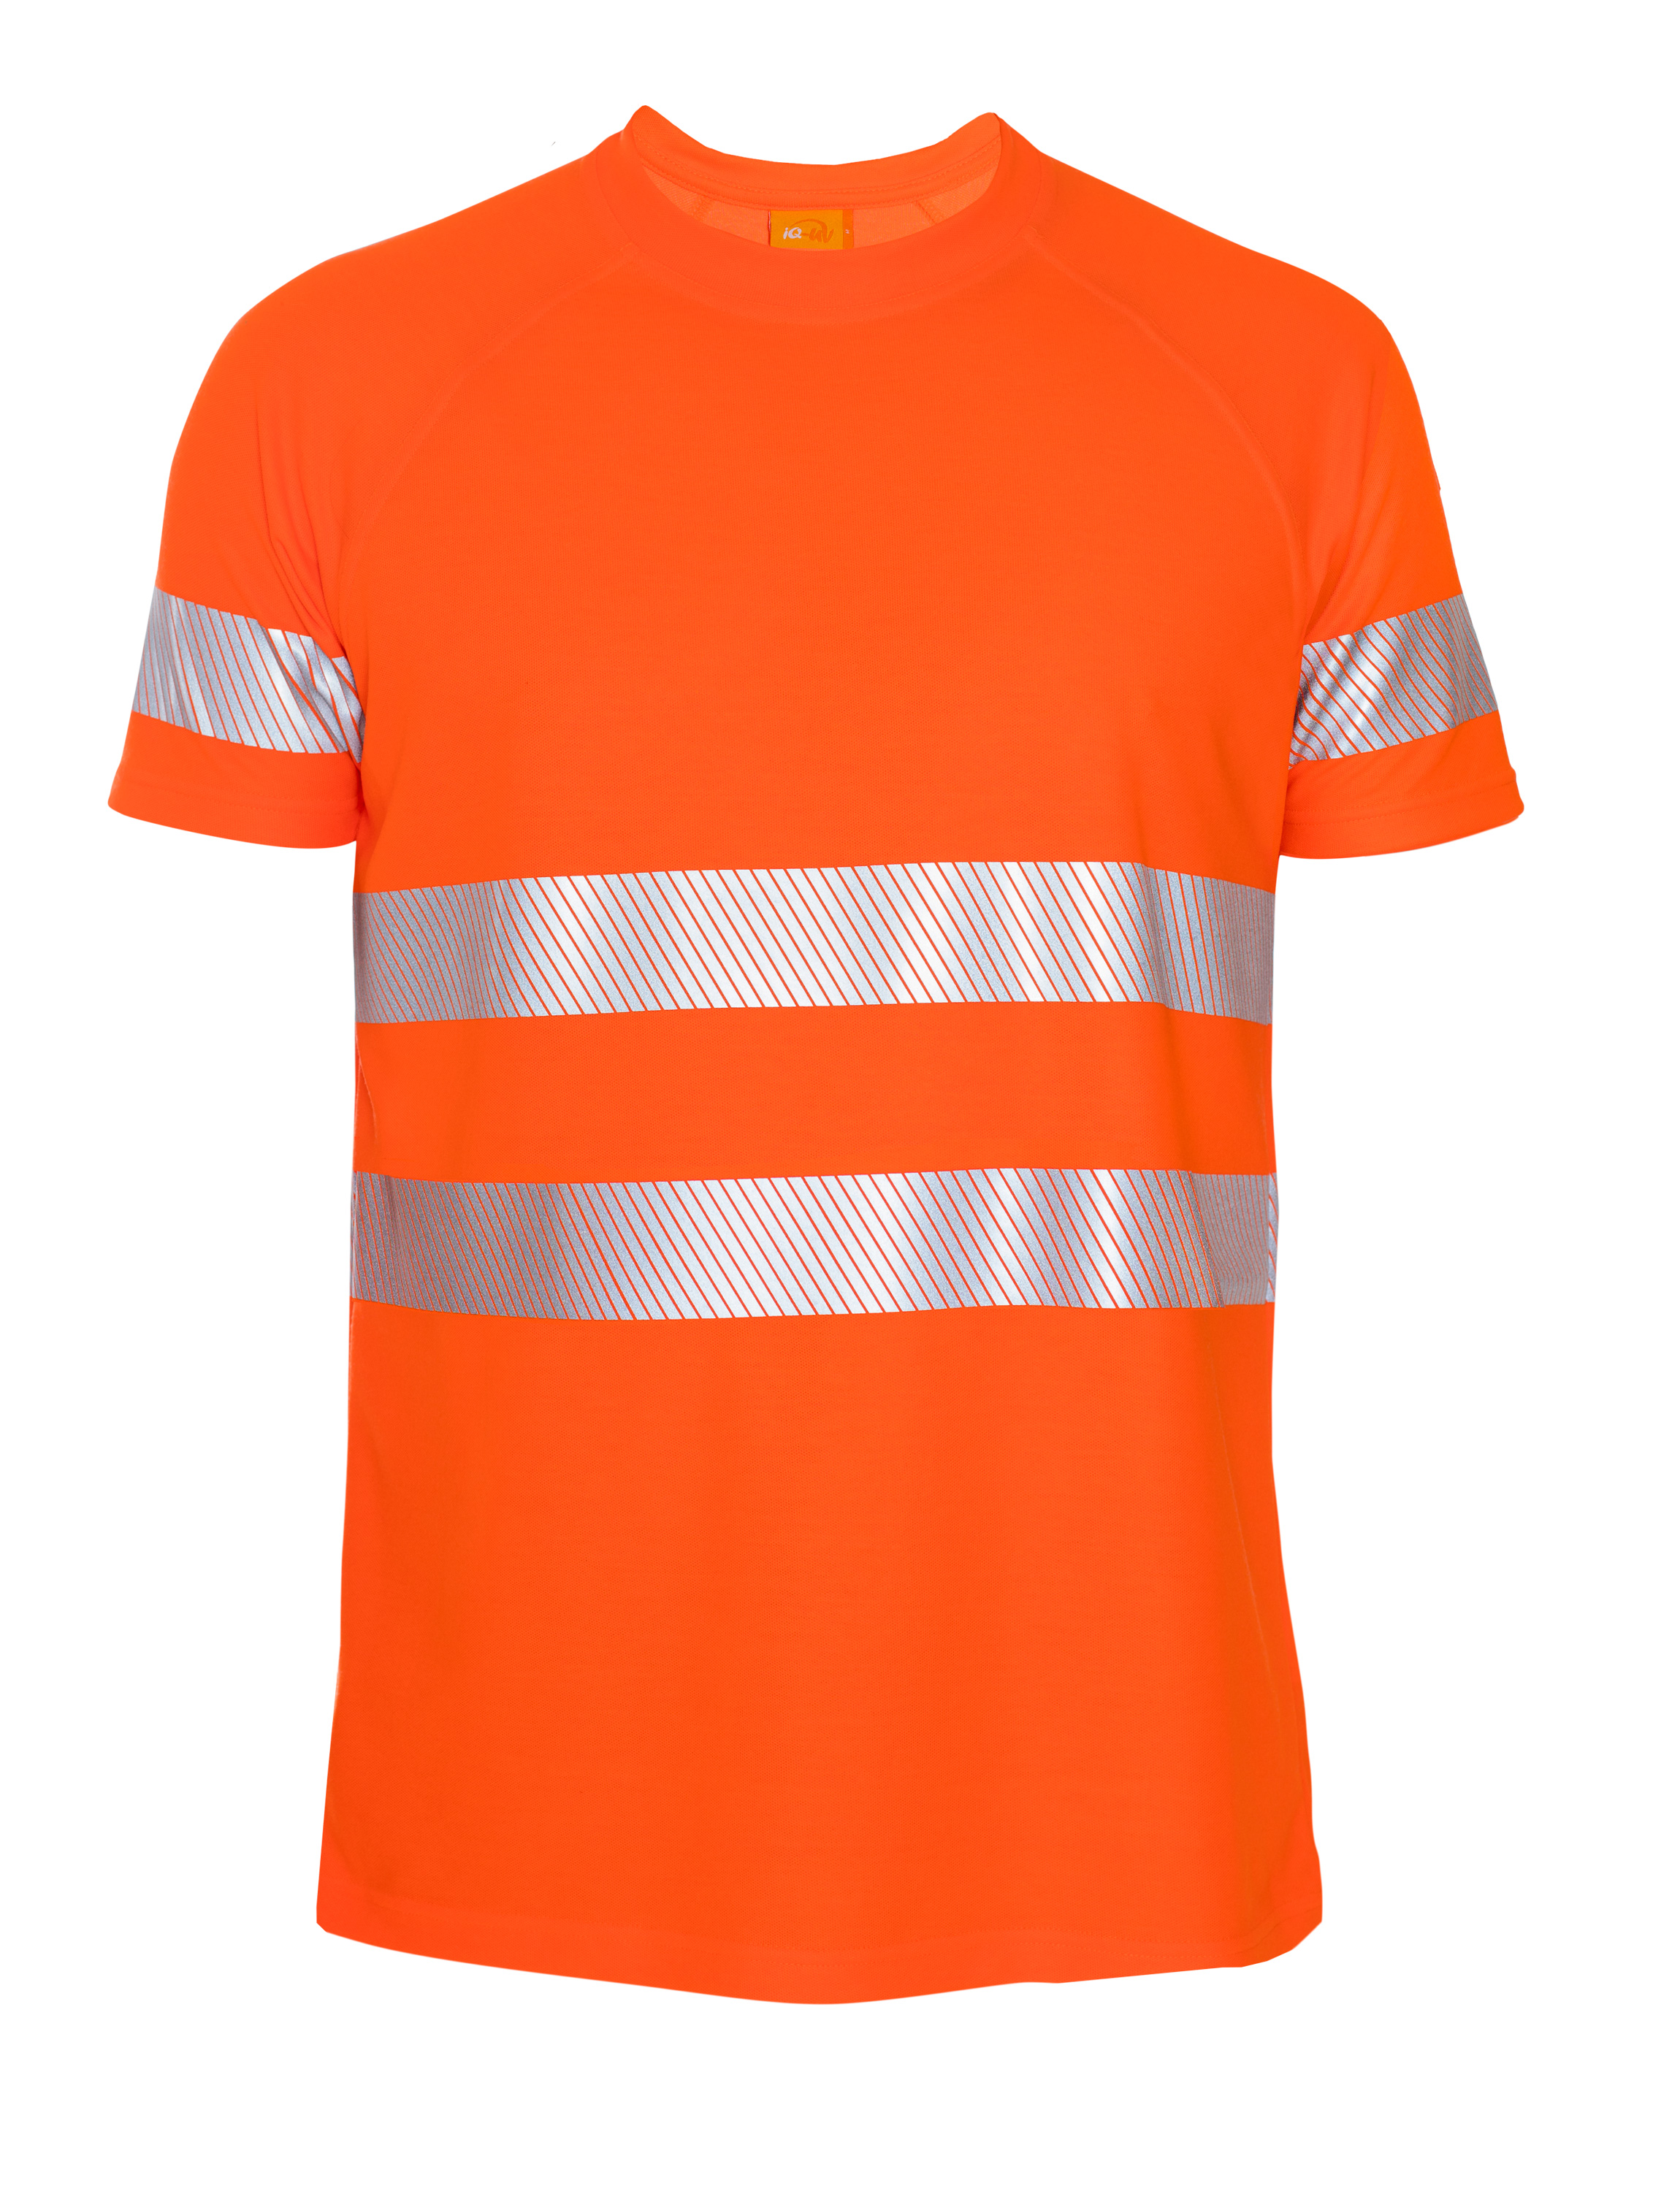 UV 50 T Shirt HiVi orange HV XL 54